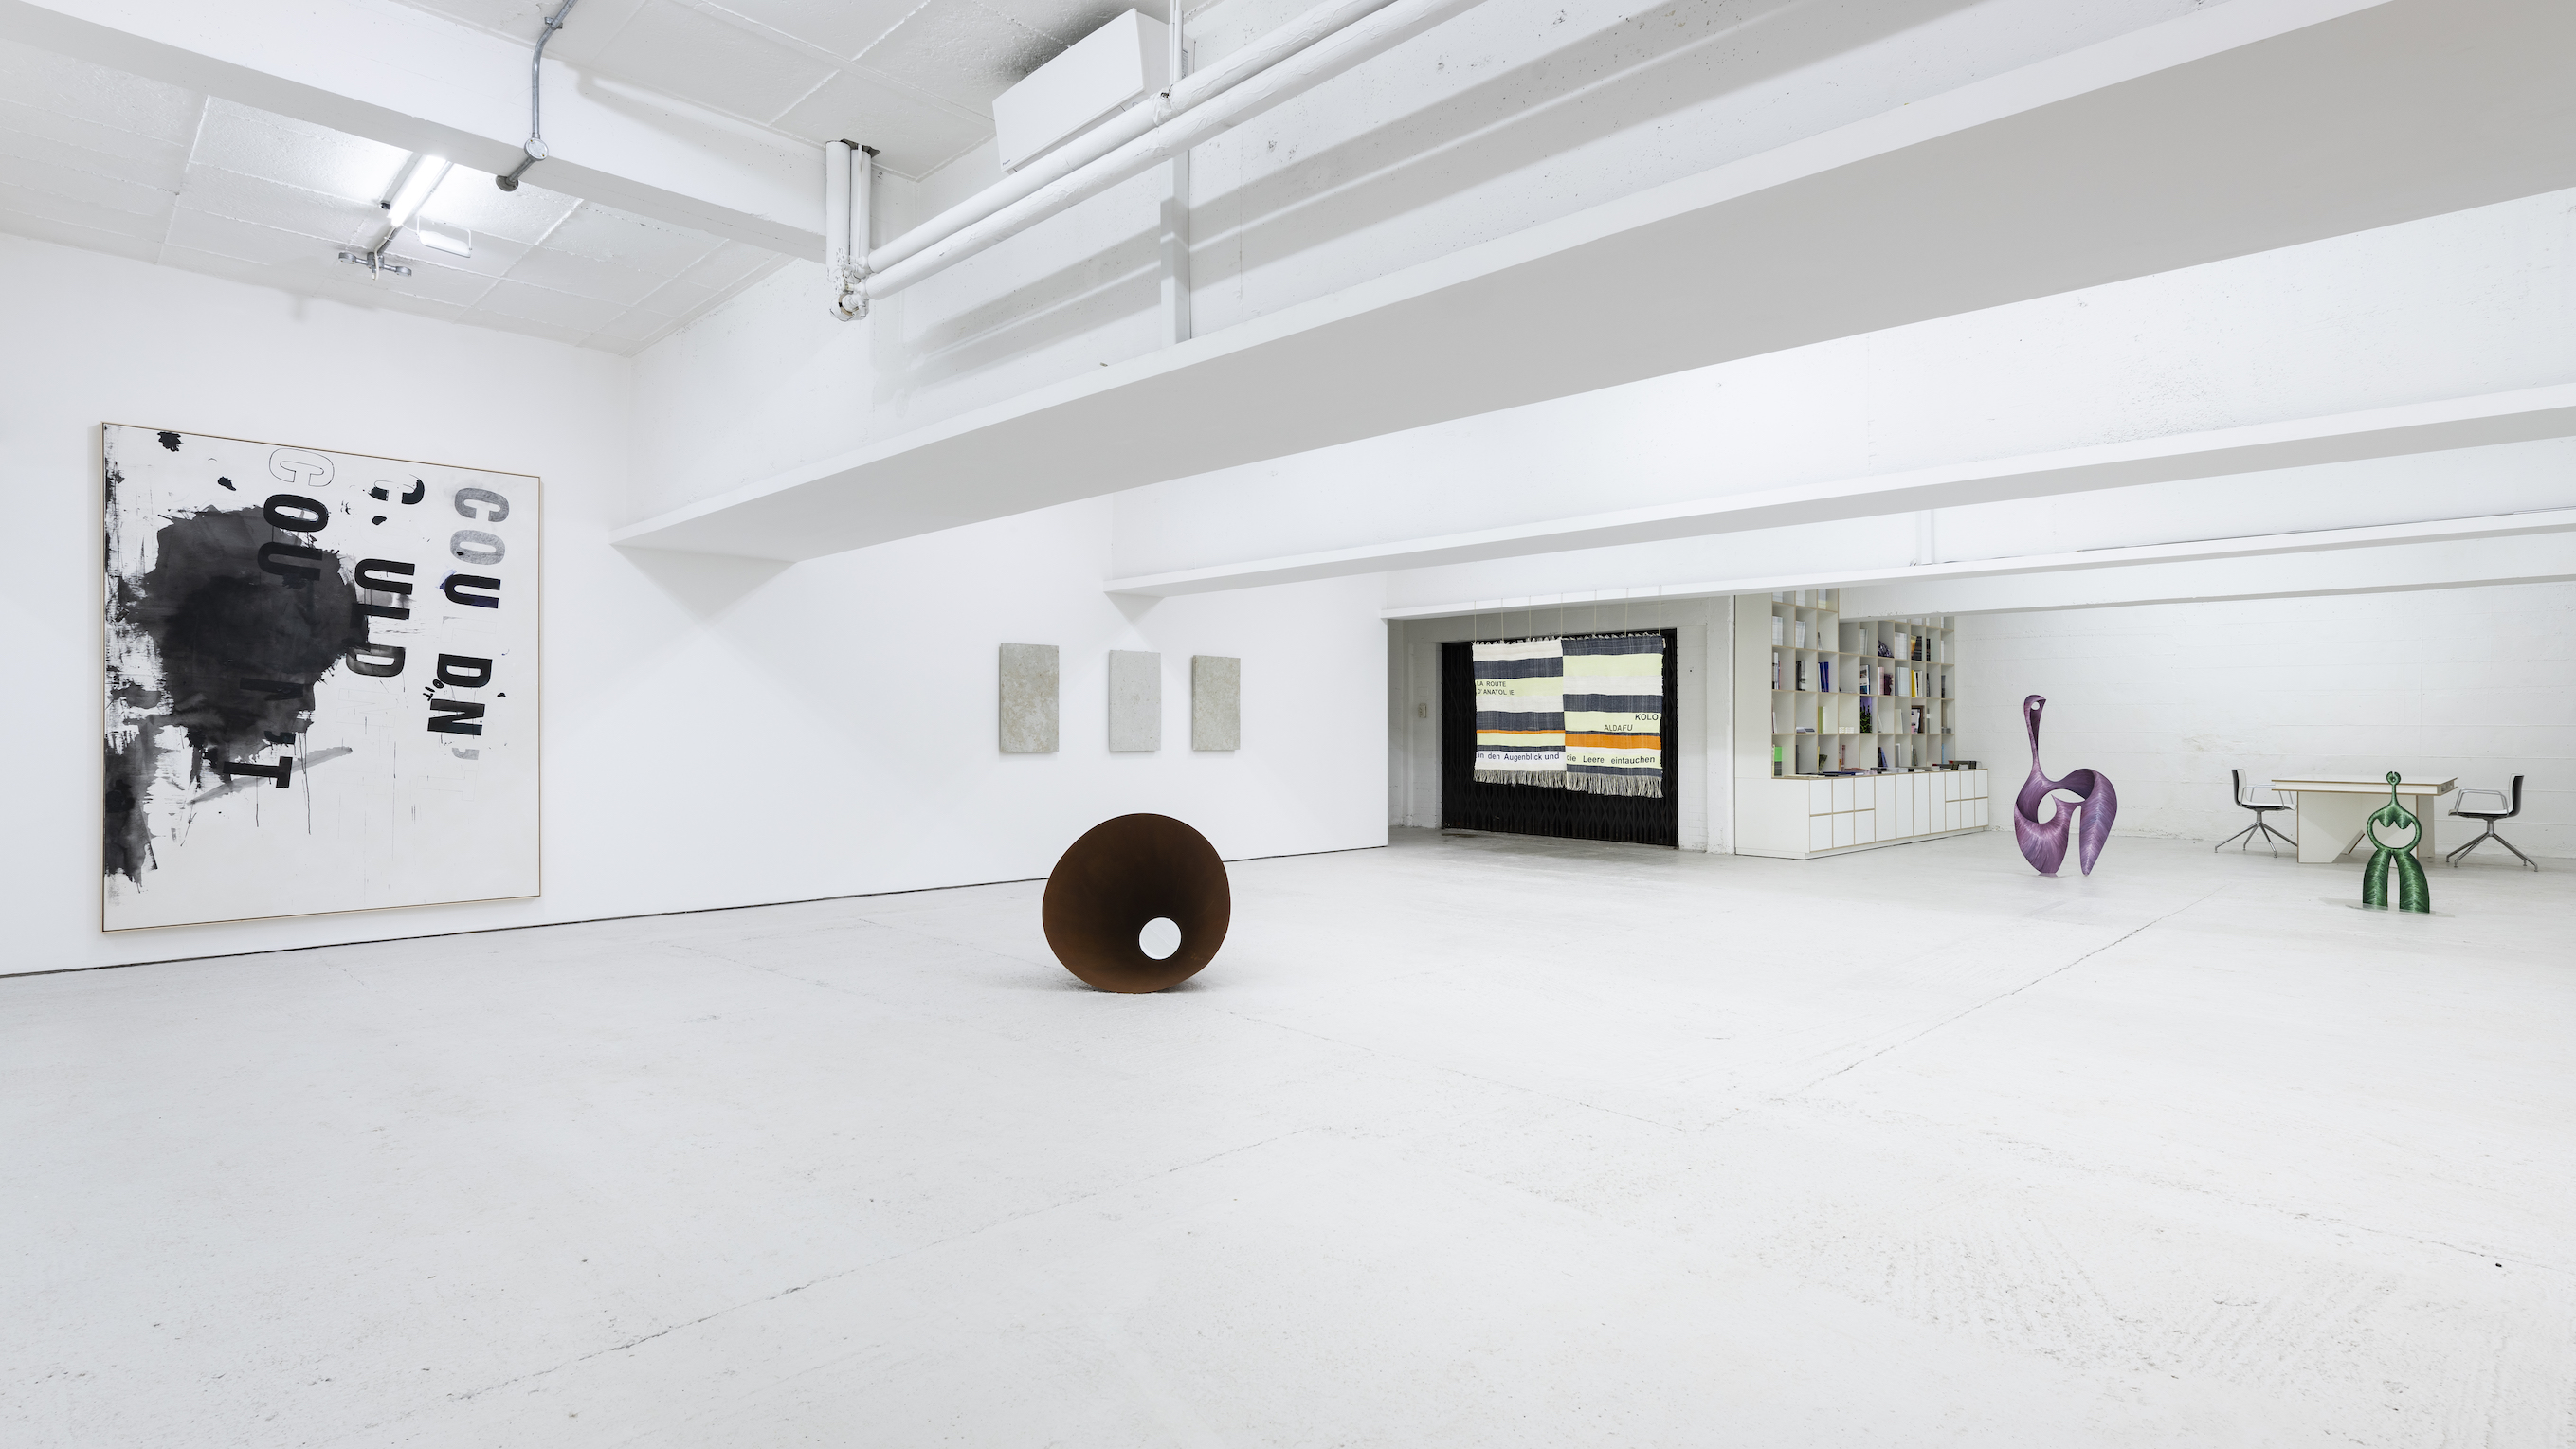 Installation view 3, Open Call, König London, 2020. photo by Damian Griffiths